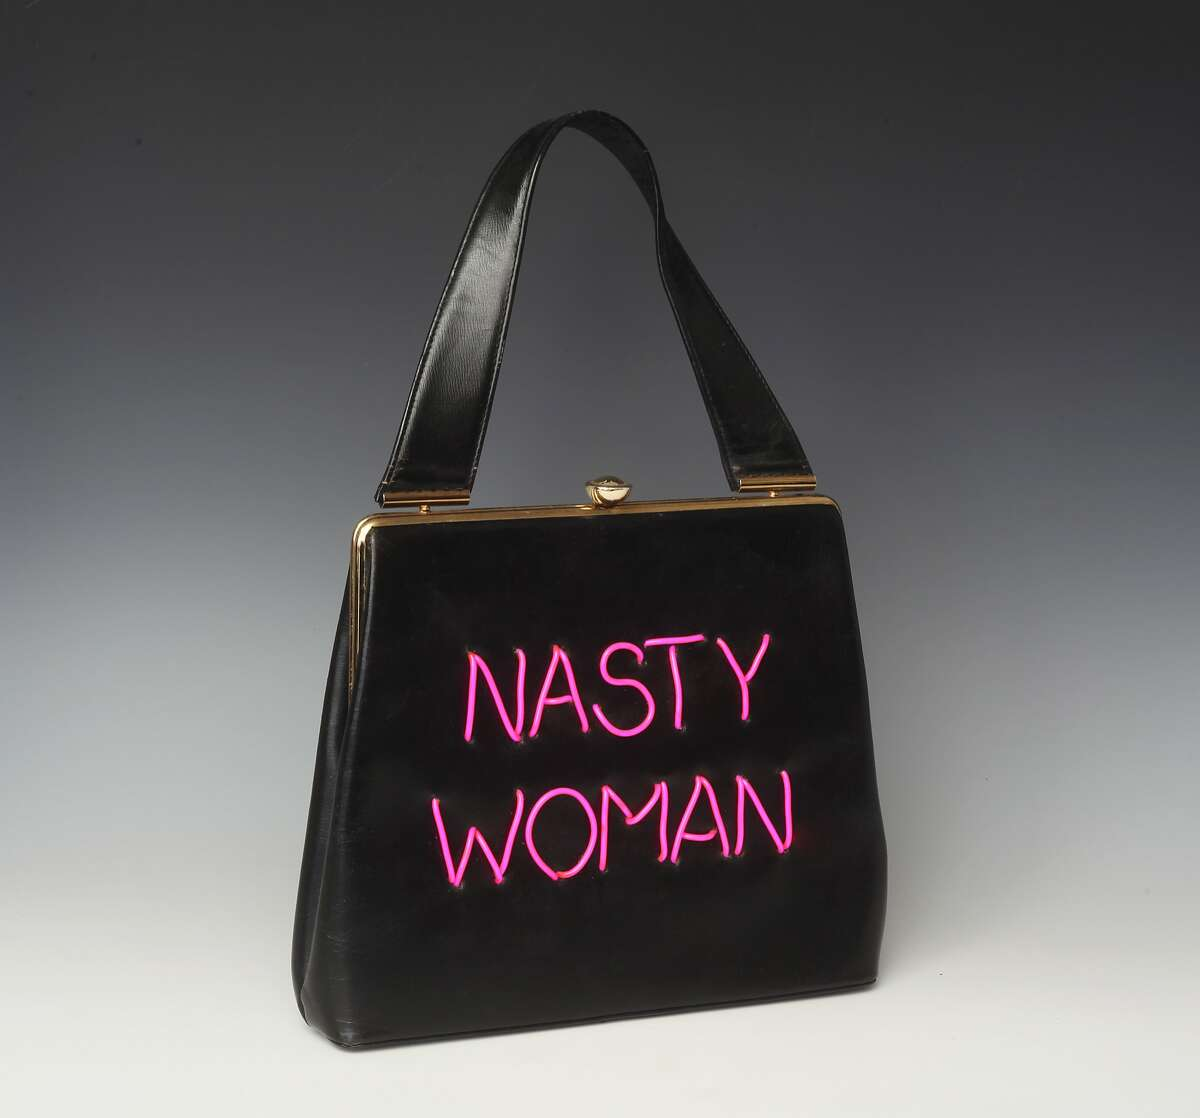 Michele Pred, a Berkeley artist, is making political statements with her Power of the Purse, a series of vintage handbags that incorporate meaningful, timely political messages. �Nasty Woman,� �Me Too,� and �My Body, My Business� are some of the phrases created using electroluminescent wire that are sewed on the purses. The series is limited edition, with only 10 made with each message.